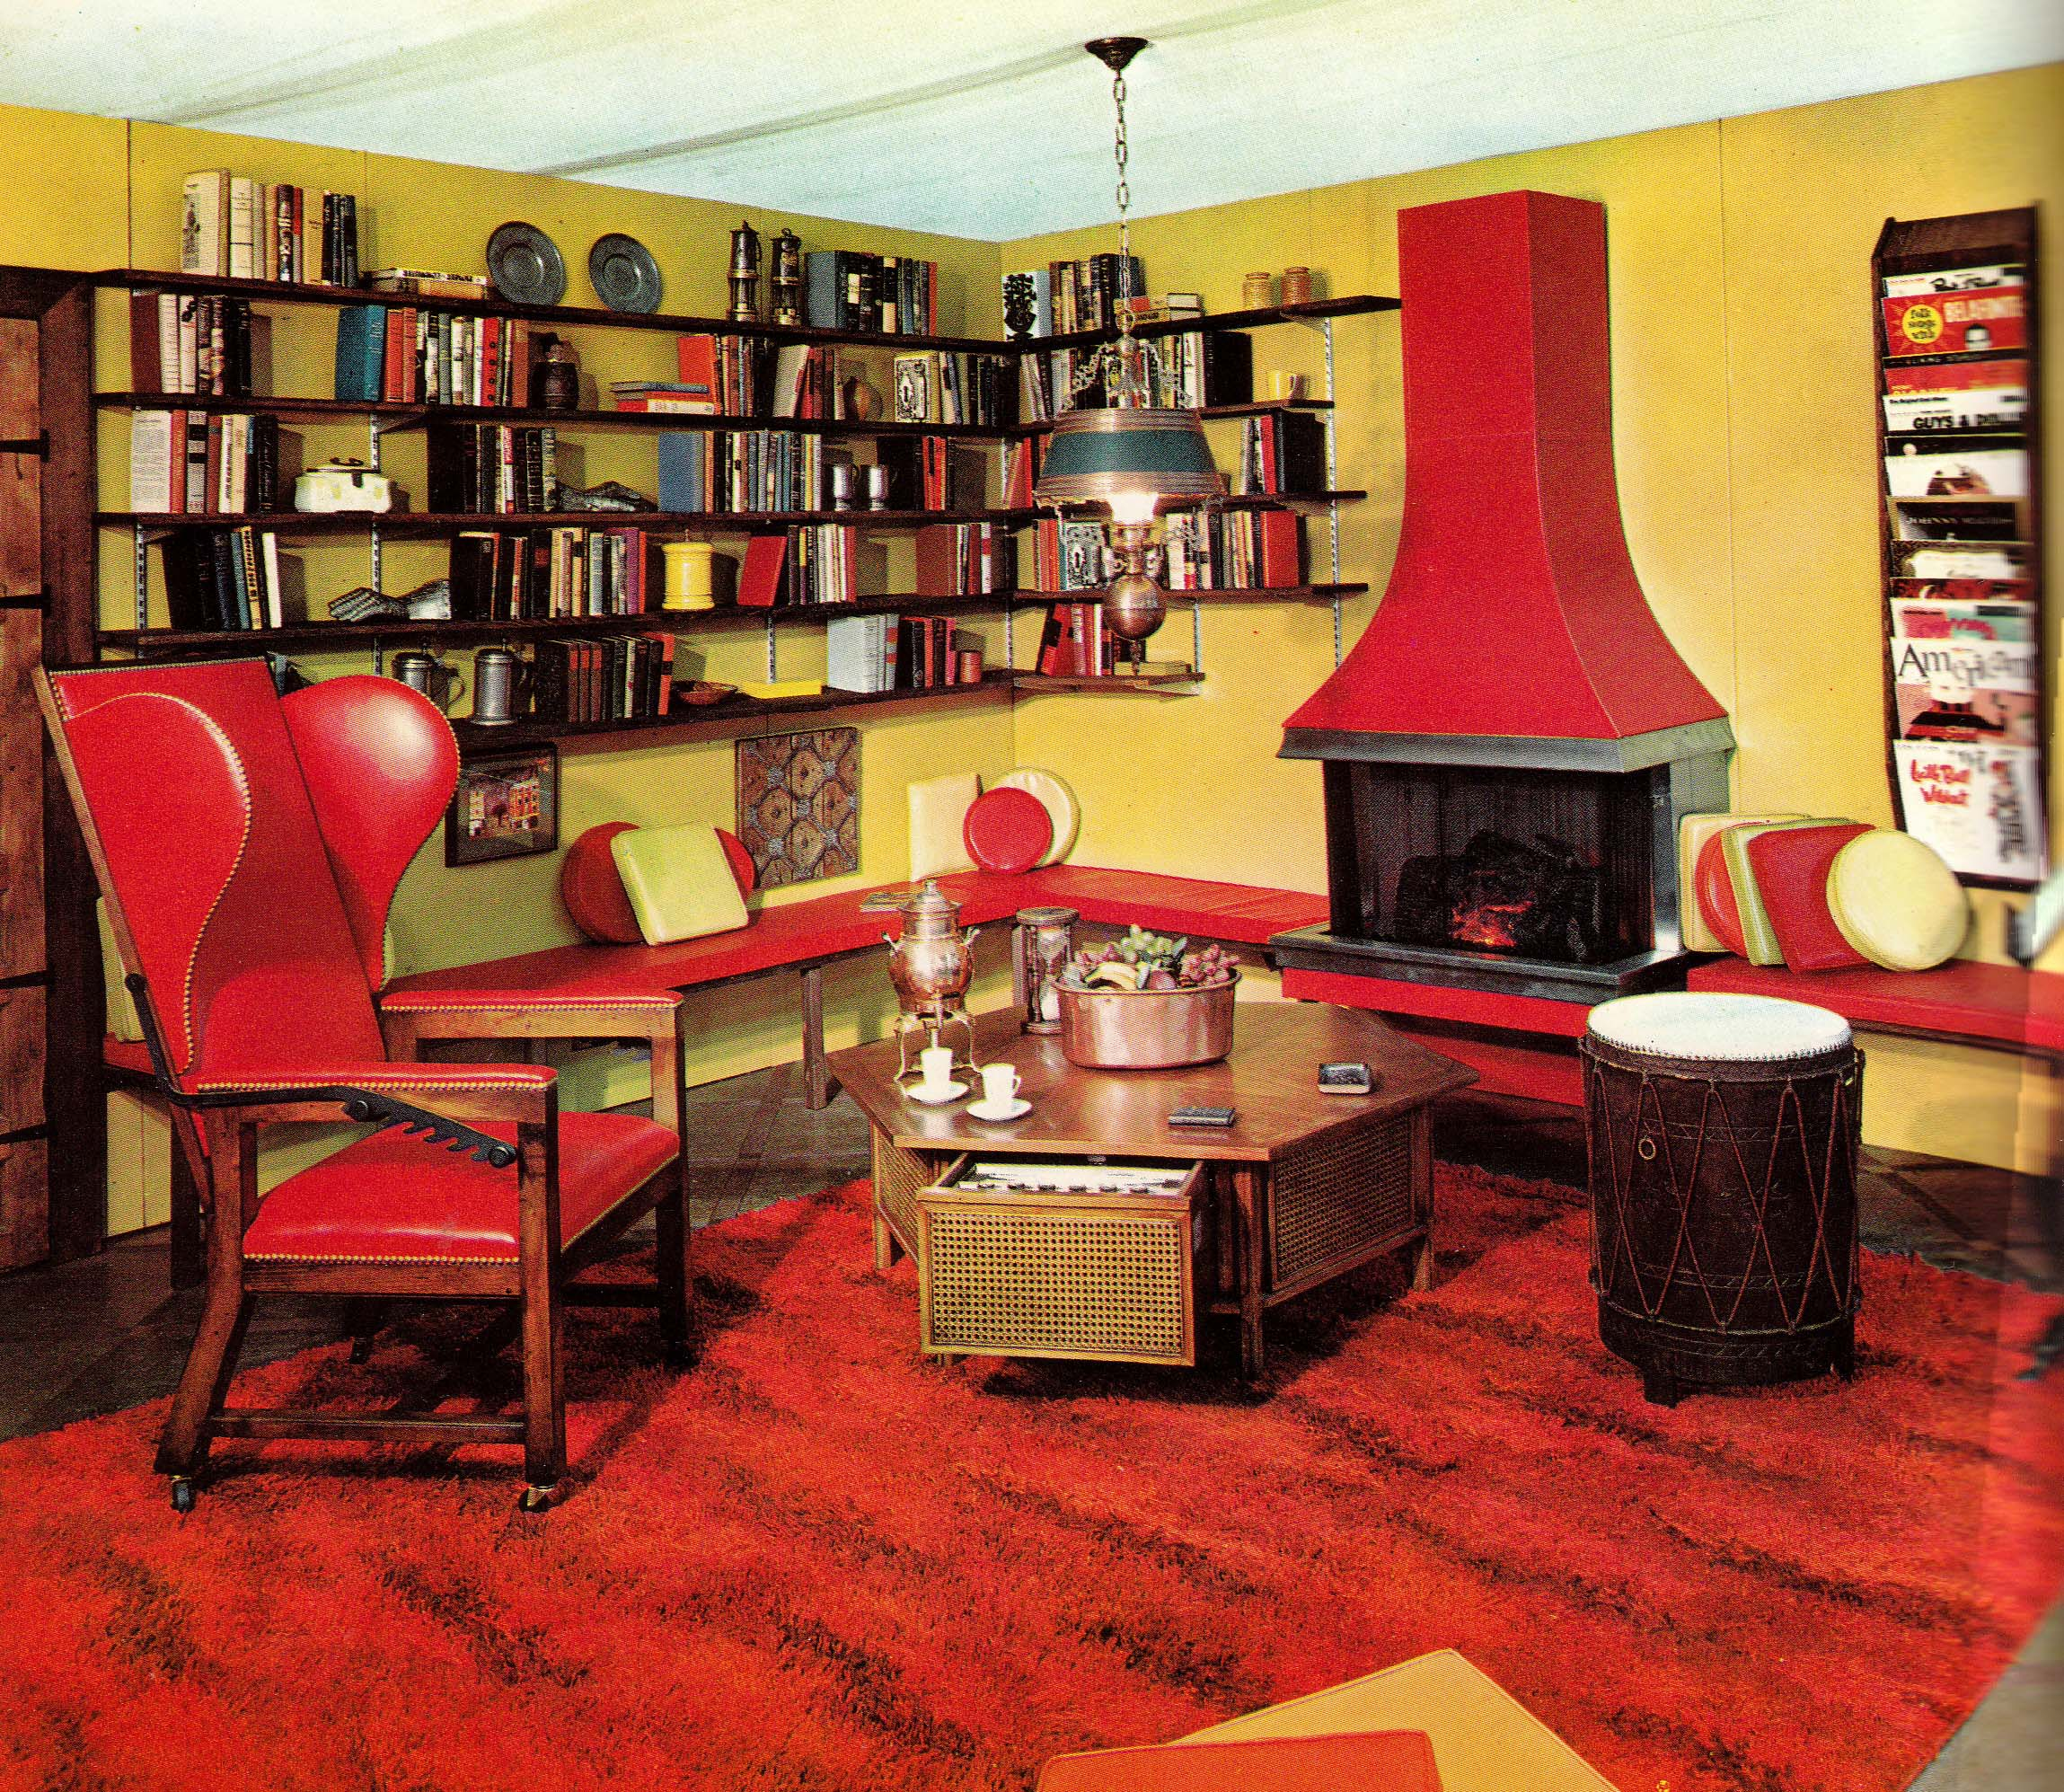 Interior Design Decorating: Home '65: A Groovy Look At Mid-Sixties Interior Décor